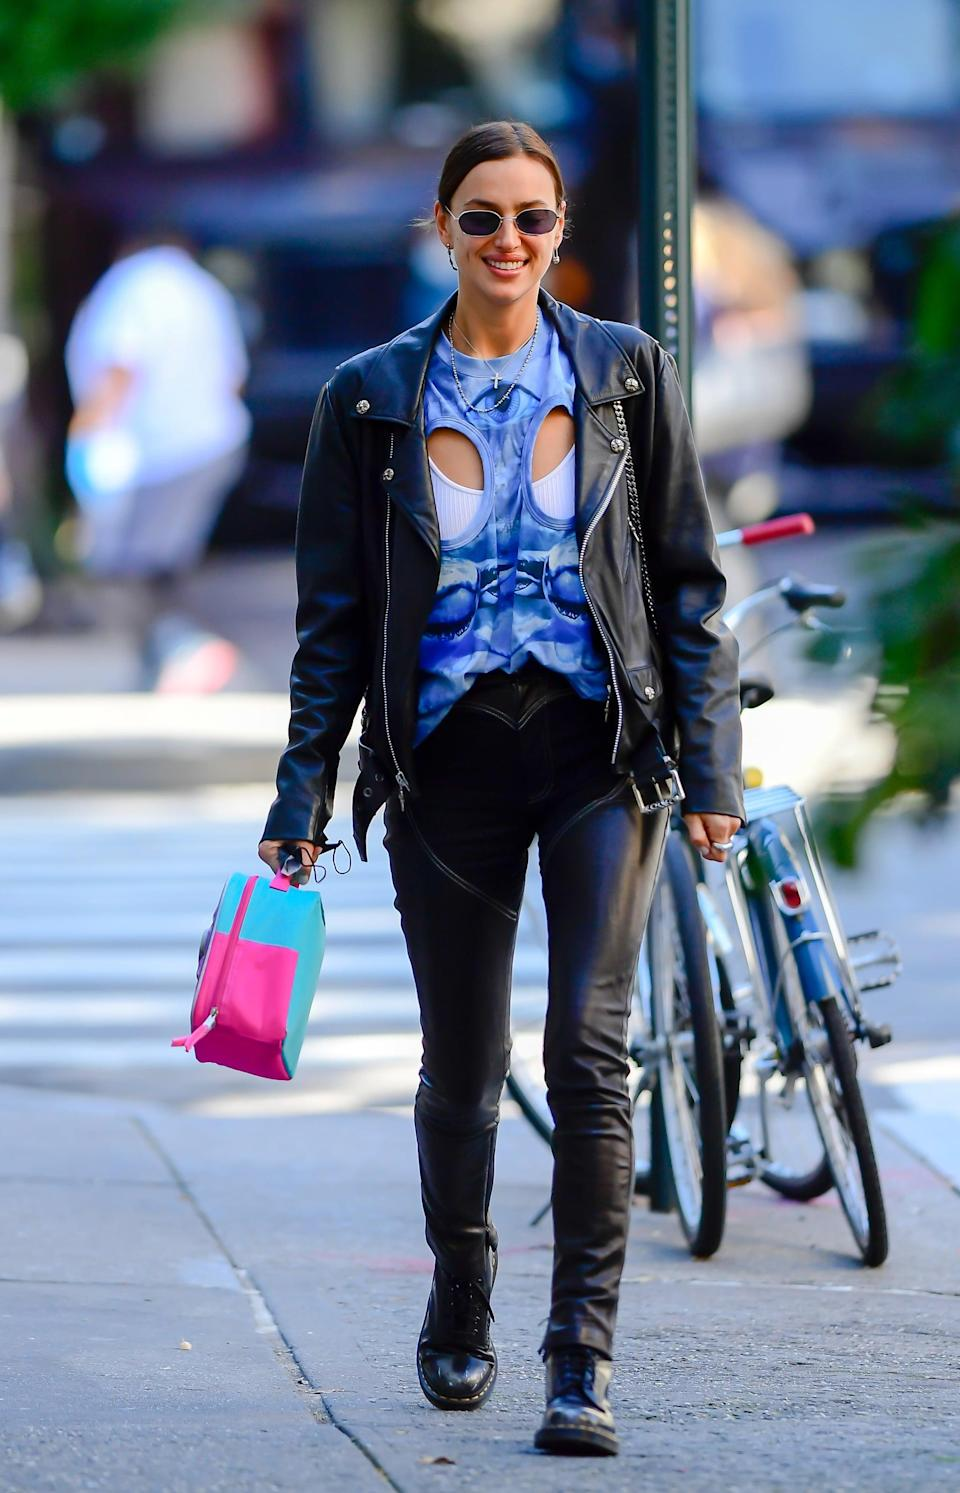 <p>While we love the nod to Regina George's iconic cutout shirt, our favorite part of this look has to be the cutest accessory: her daughter's lunch box.</p>